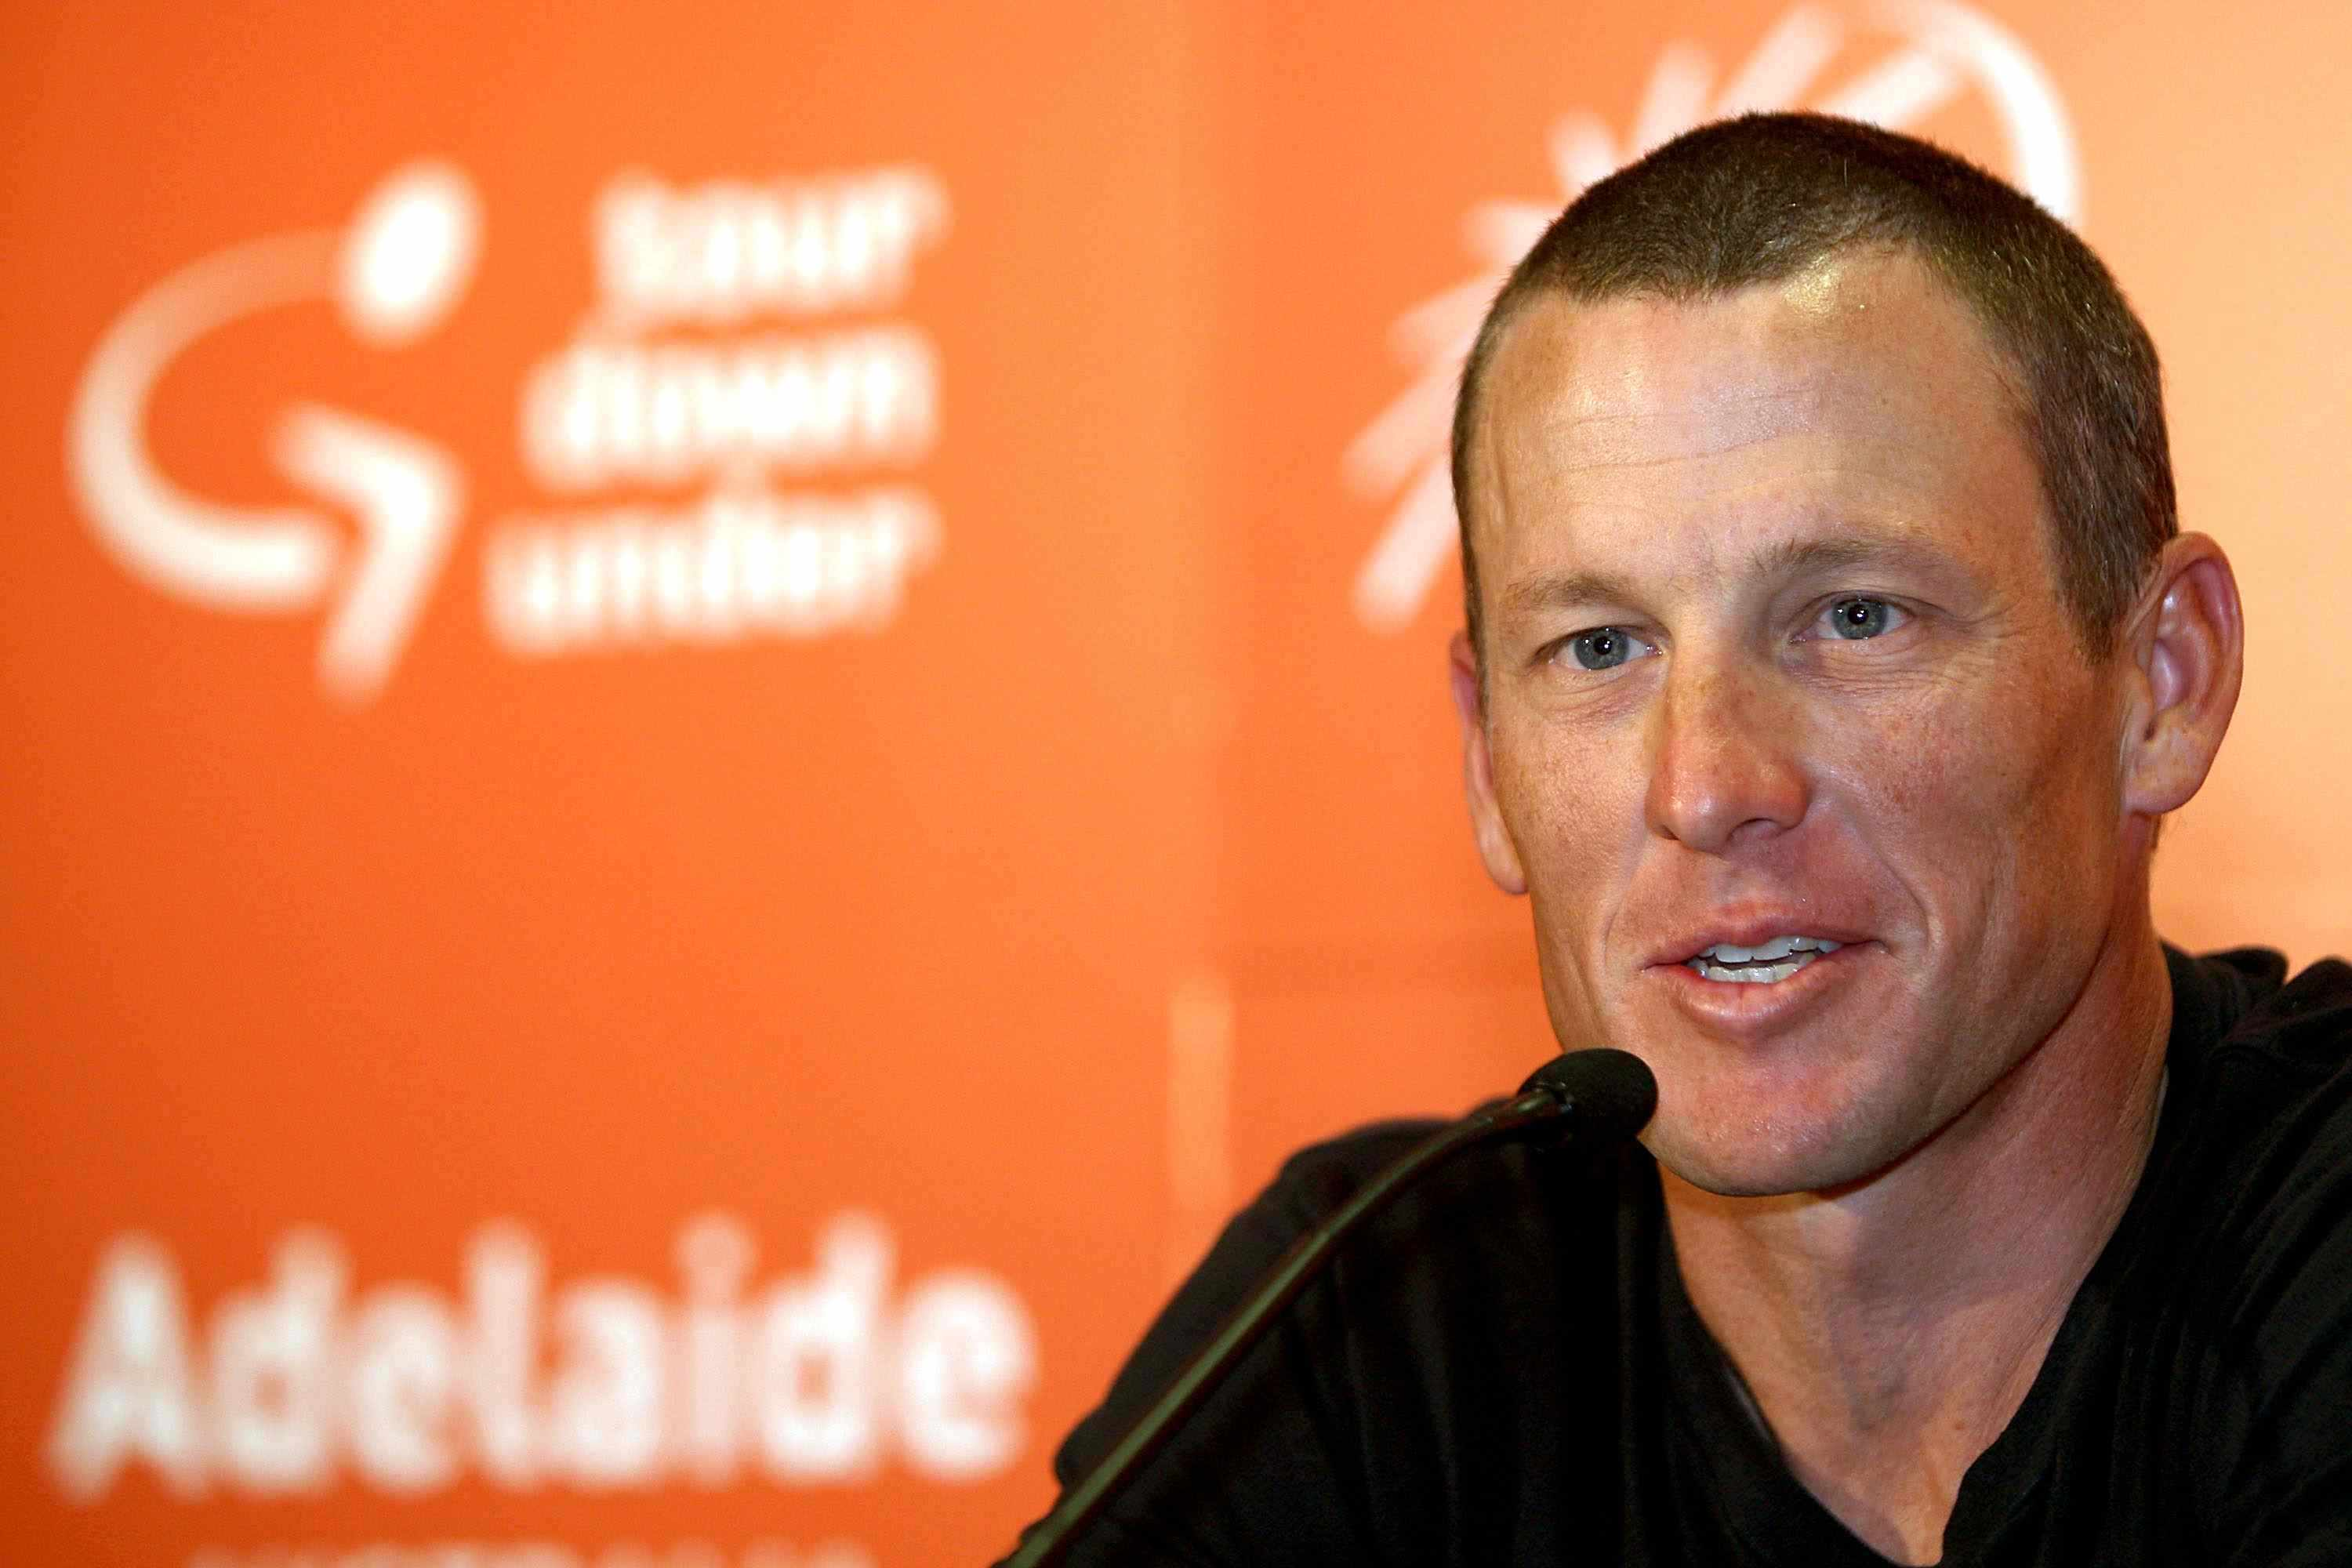 Lance Armstrong speaks to the media in Australia on January 17, 2009.